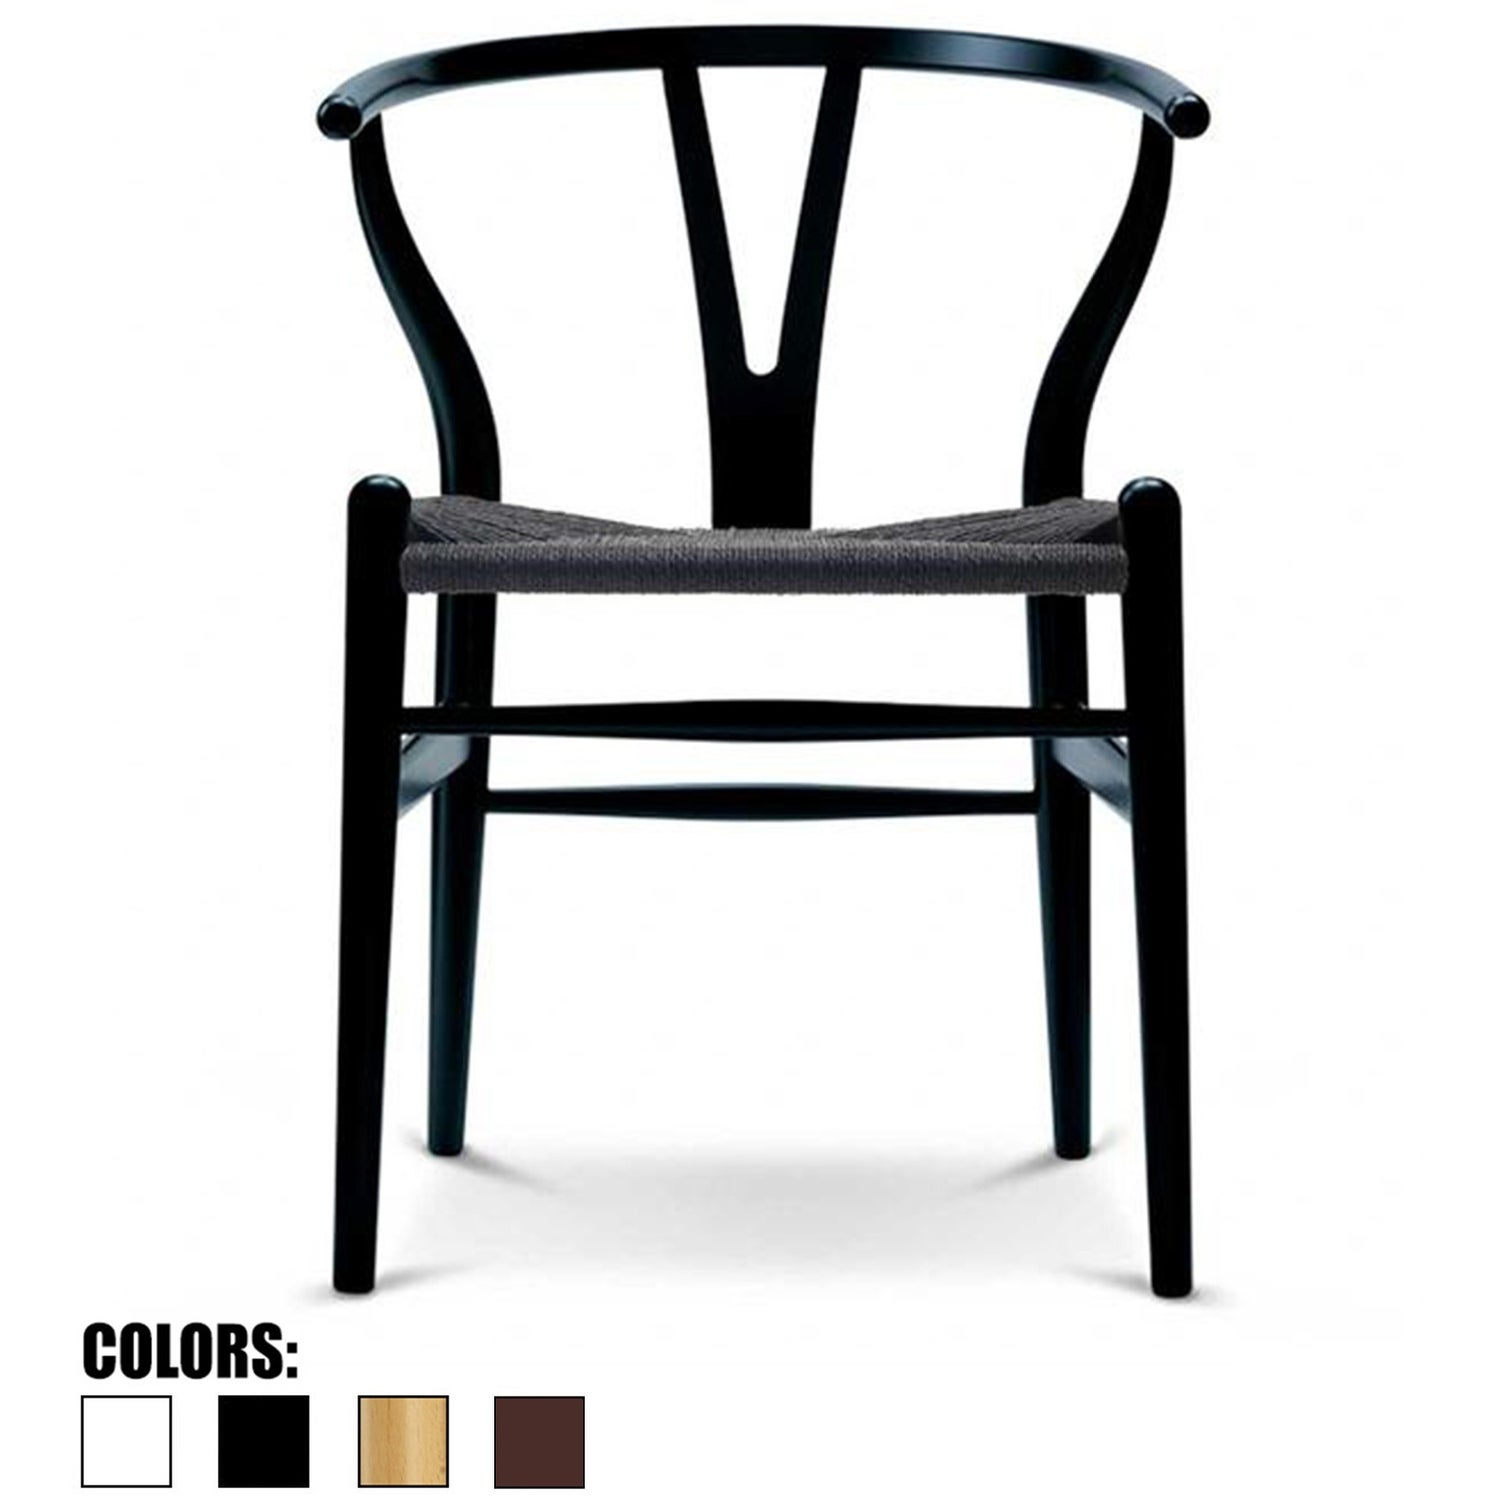 2xhome Woven Wood Armchair With Arms Open Back Mid Century Modern Office Dining Chairs Black Seat